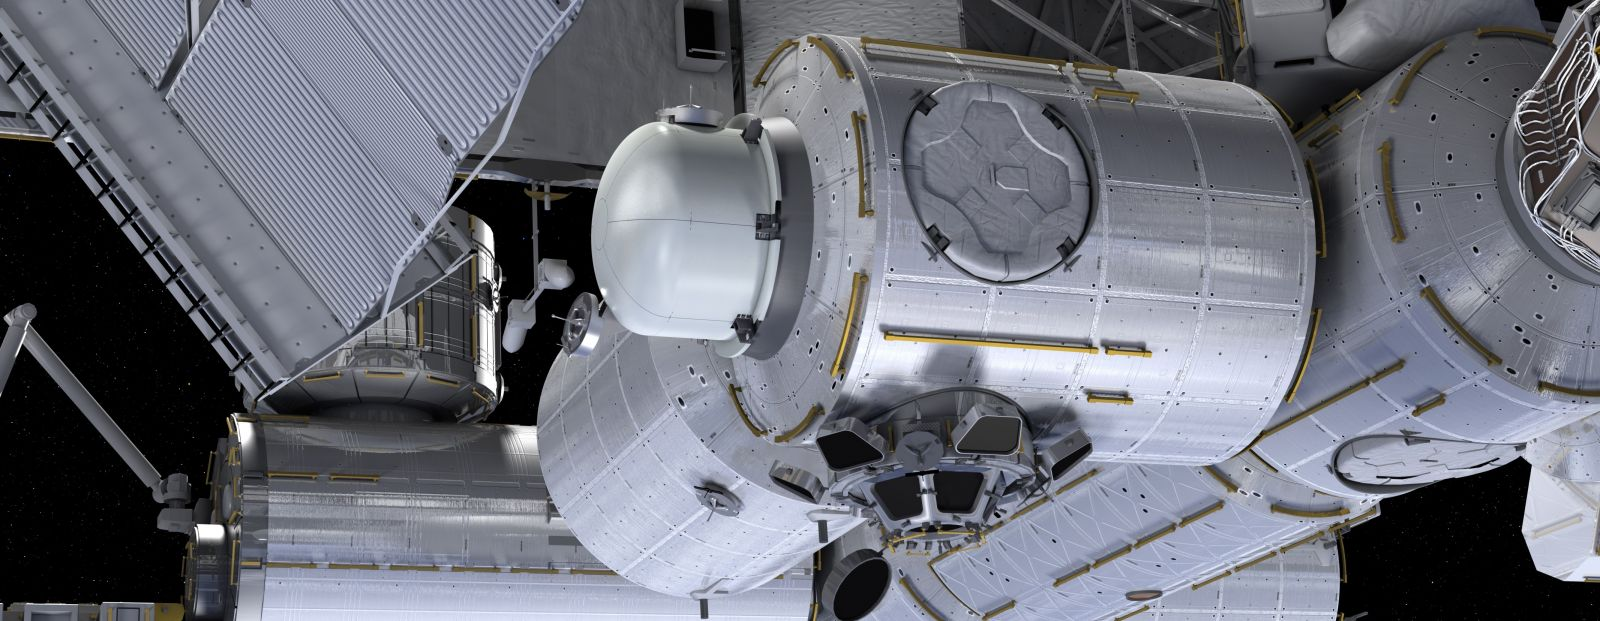 The commercial Bishop airlock will be attached to the Tranquility module on the ISS. Image Credit: NanoRacks